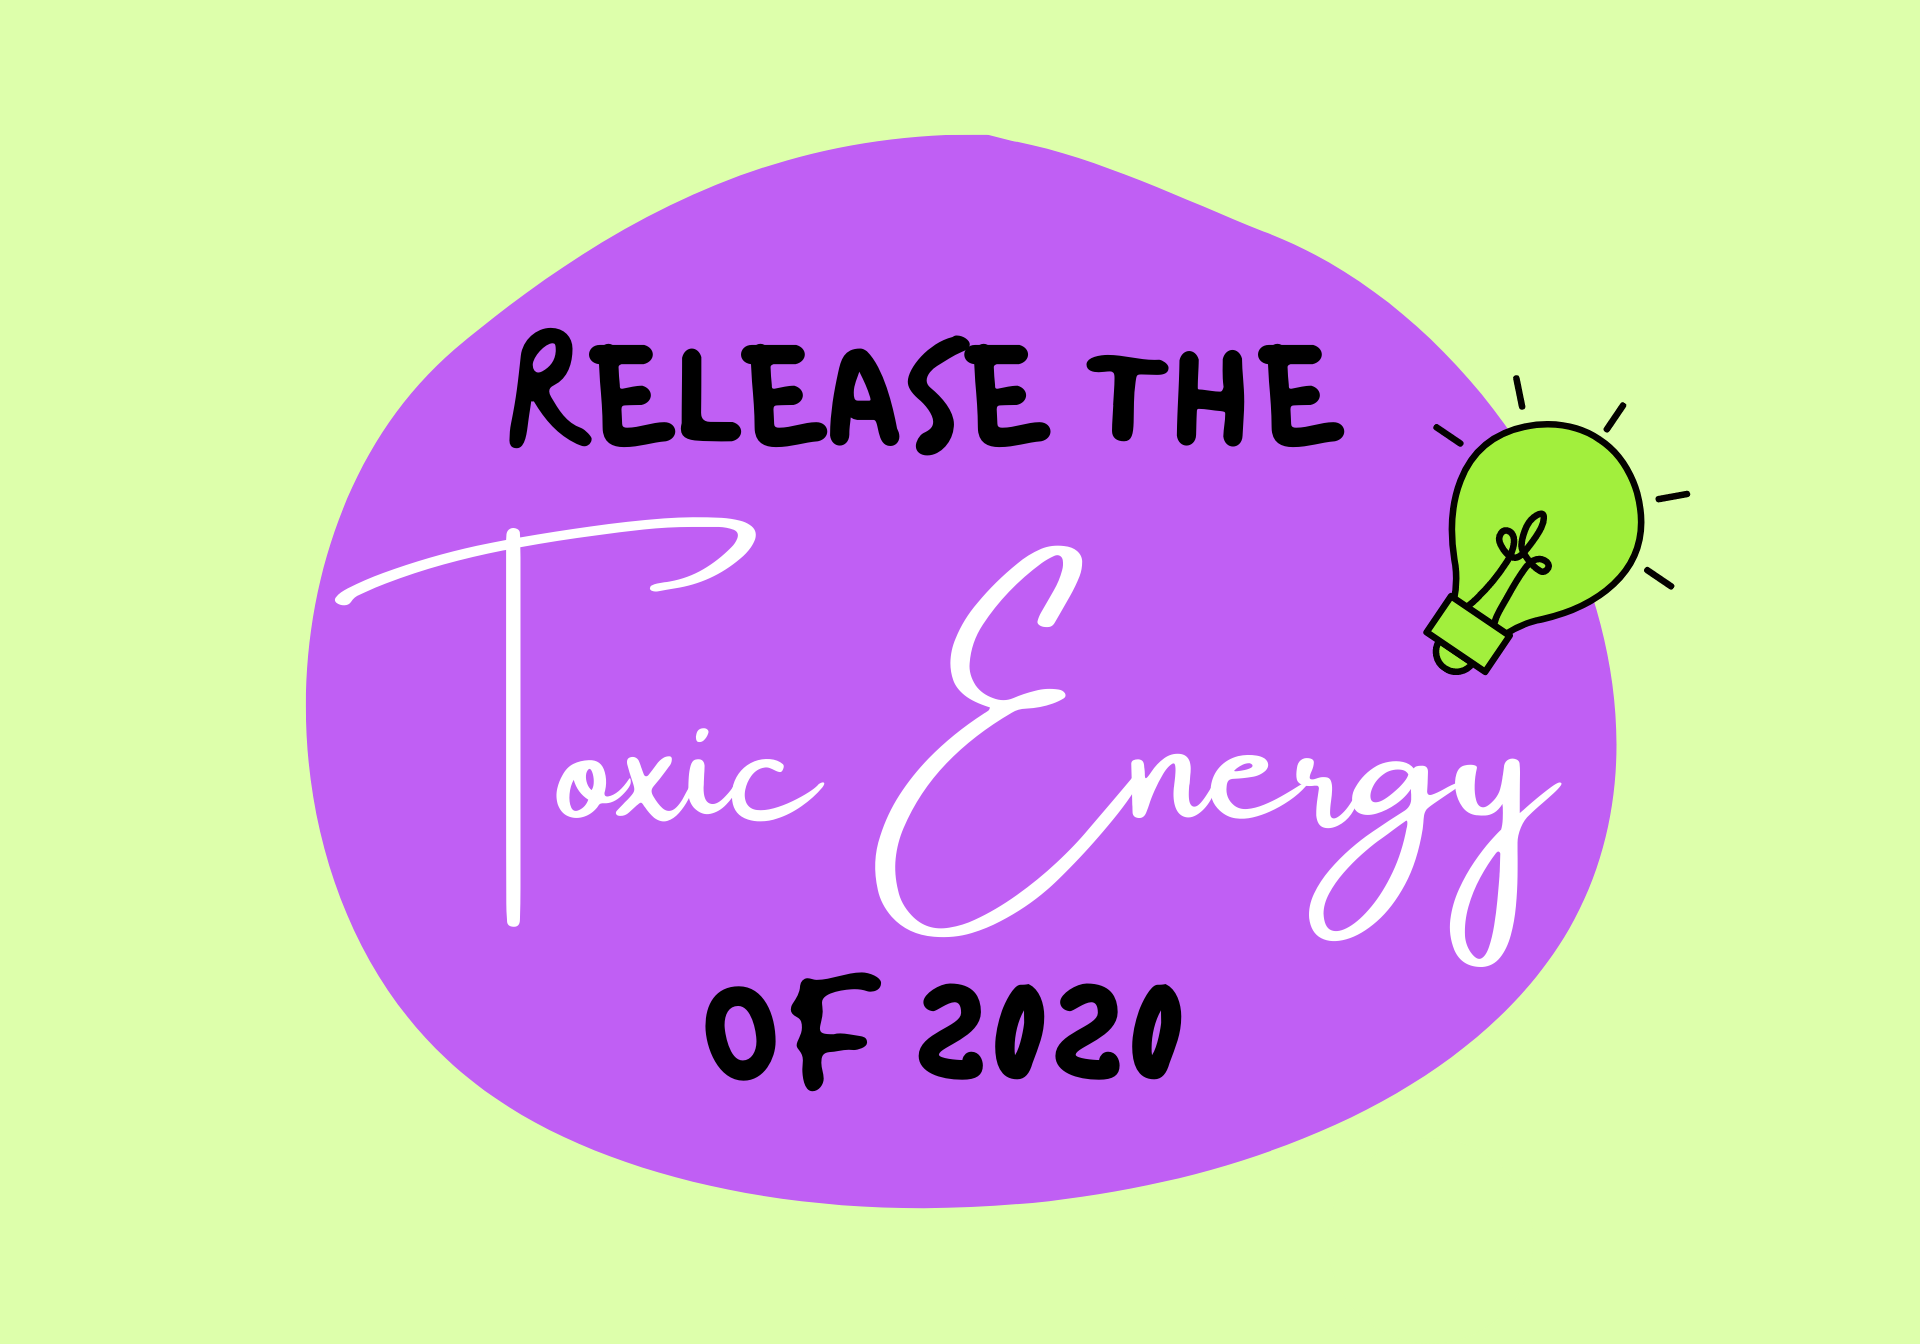 Release The Toxic Energy of 2020